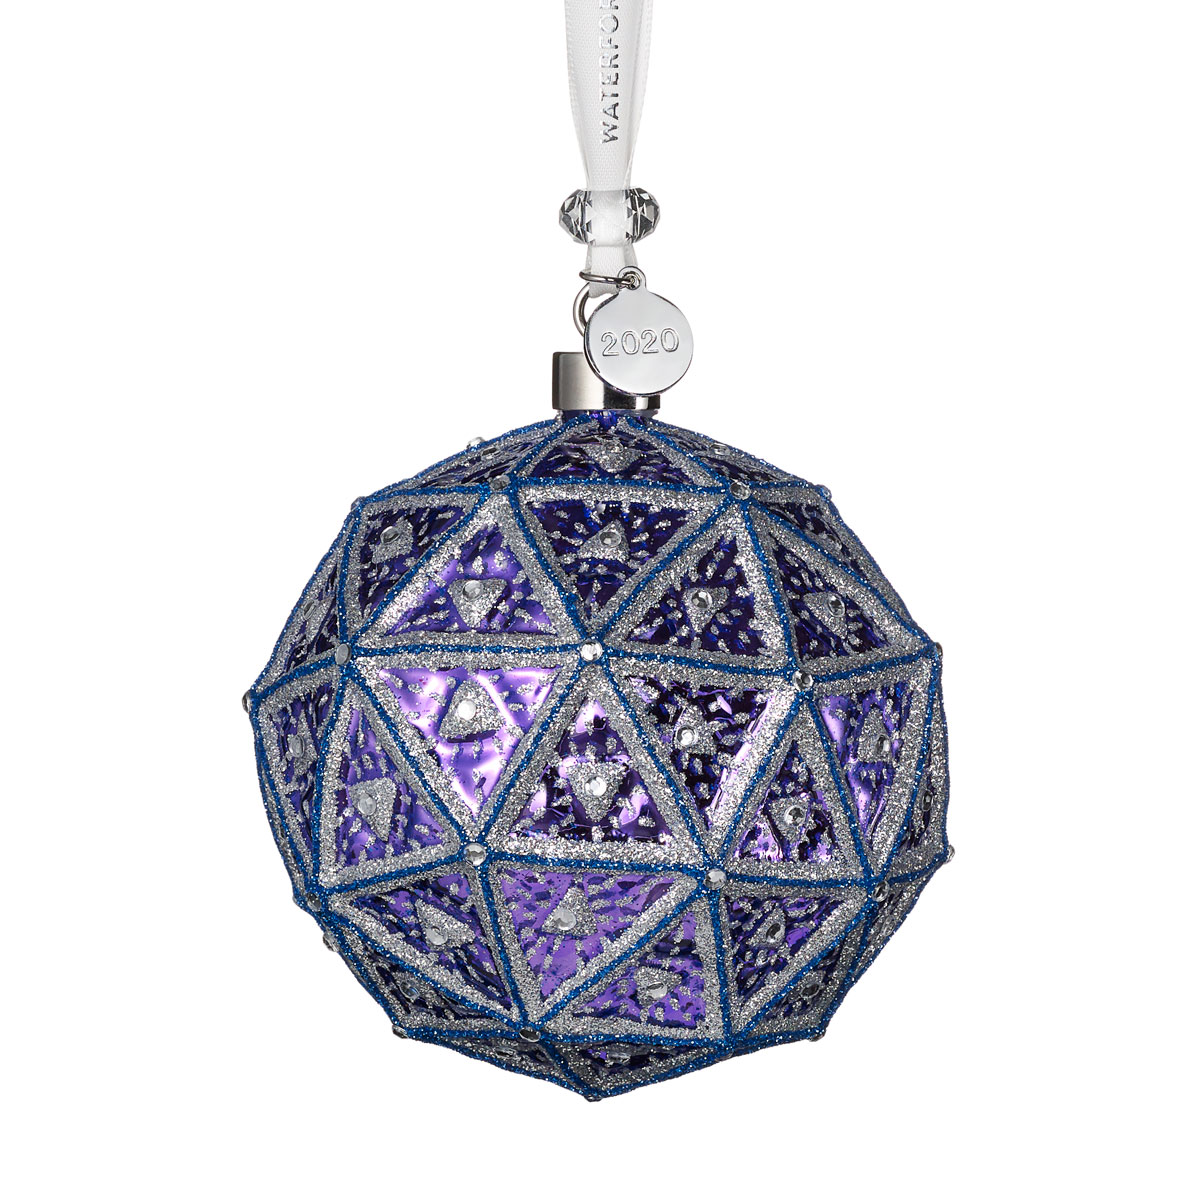 Waterford Crystal 2020 Times Square Replica Ball Ornament